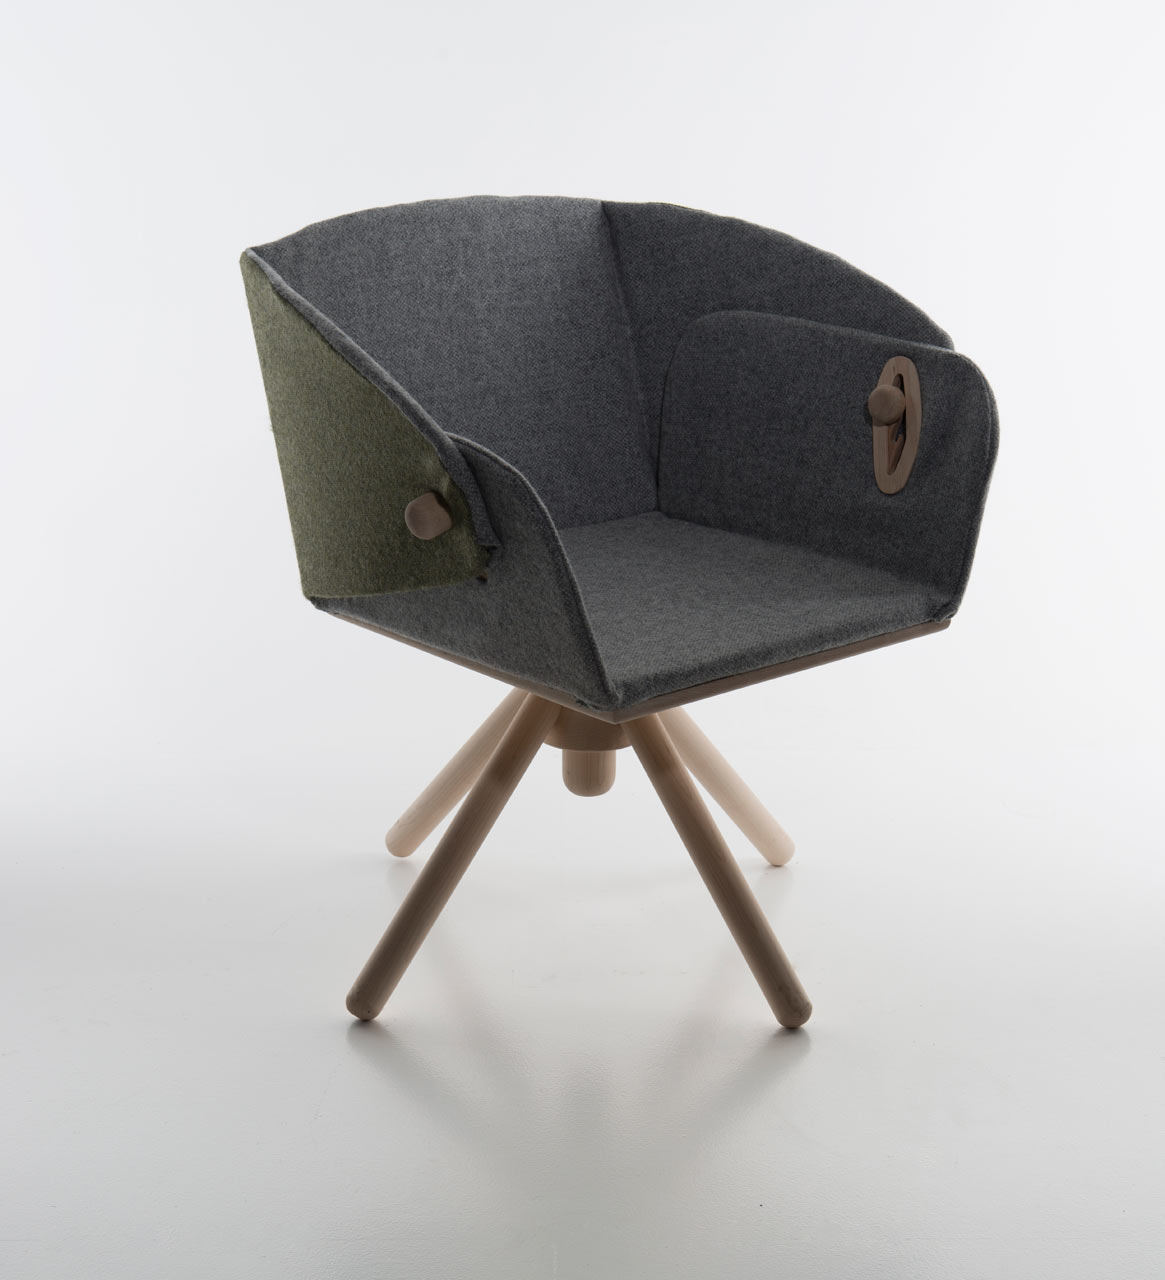 The-Stockholm-Chair-Karen-Ingeborg-Naalsund-1